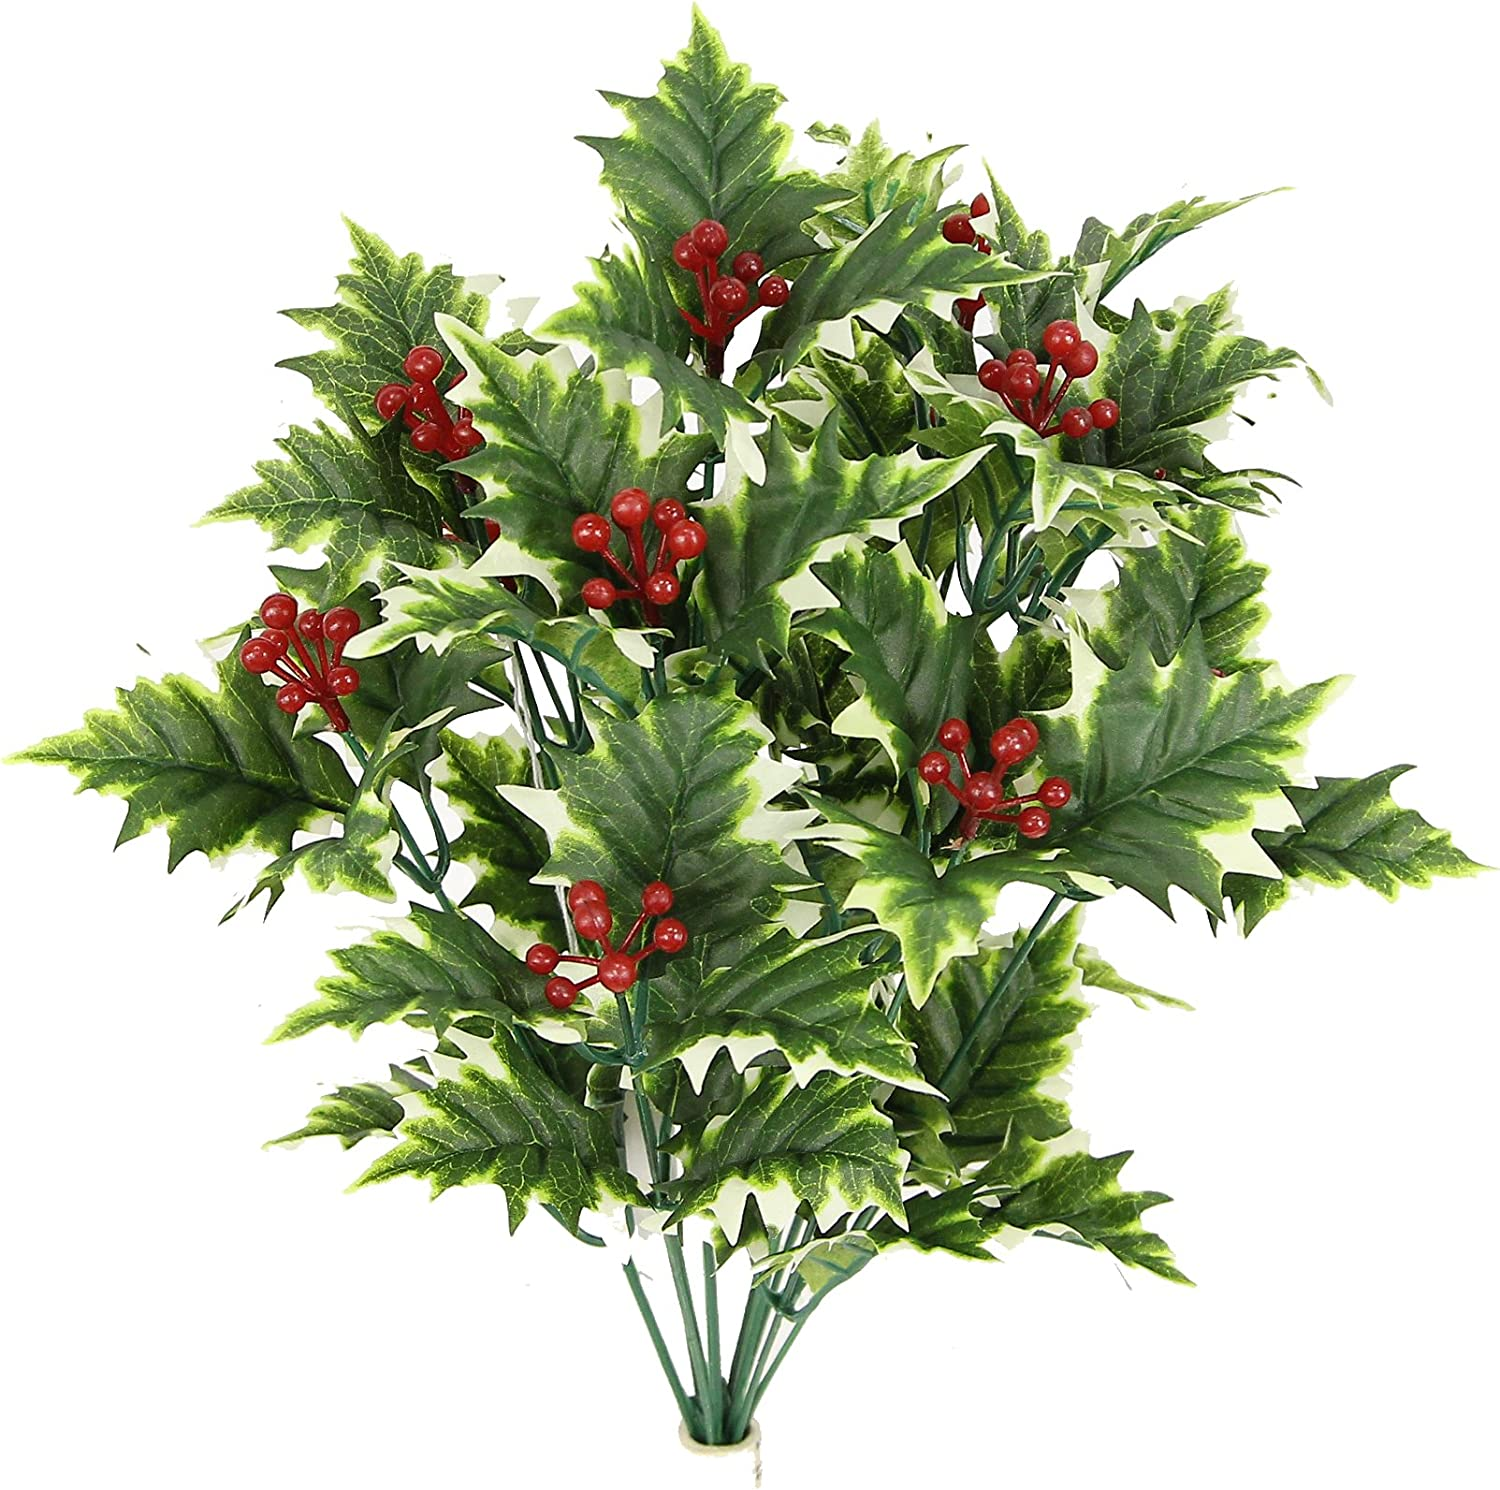 Green Admired By Nature GPB5811-GREEN 12 Stem Artificial Holly Leaves Berries Mixed Bush